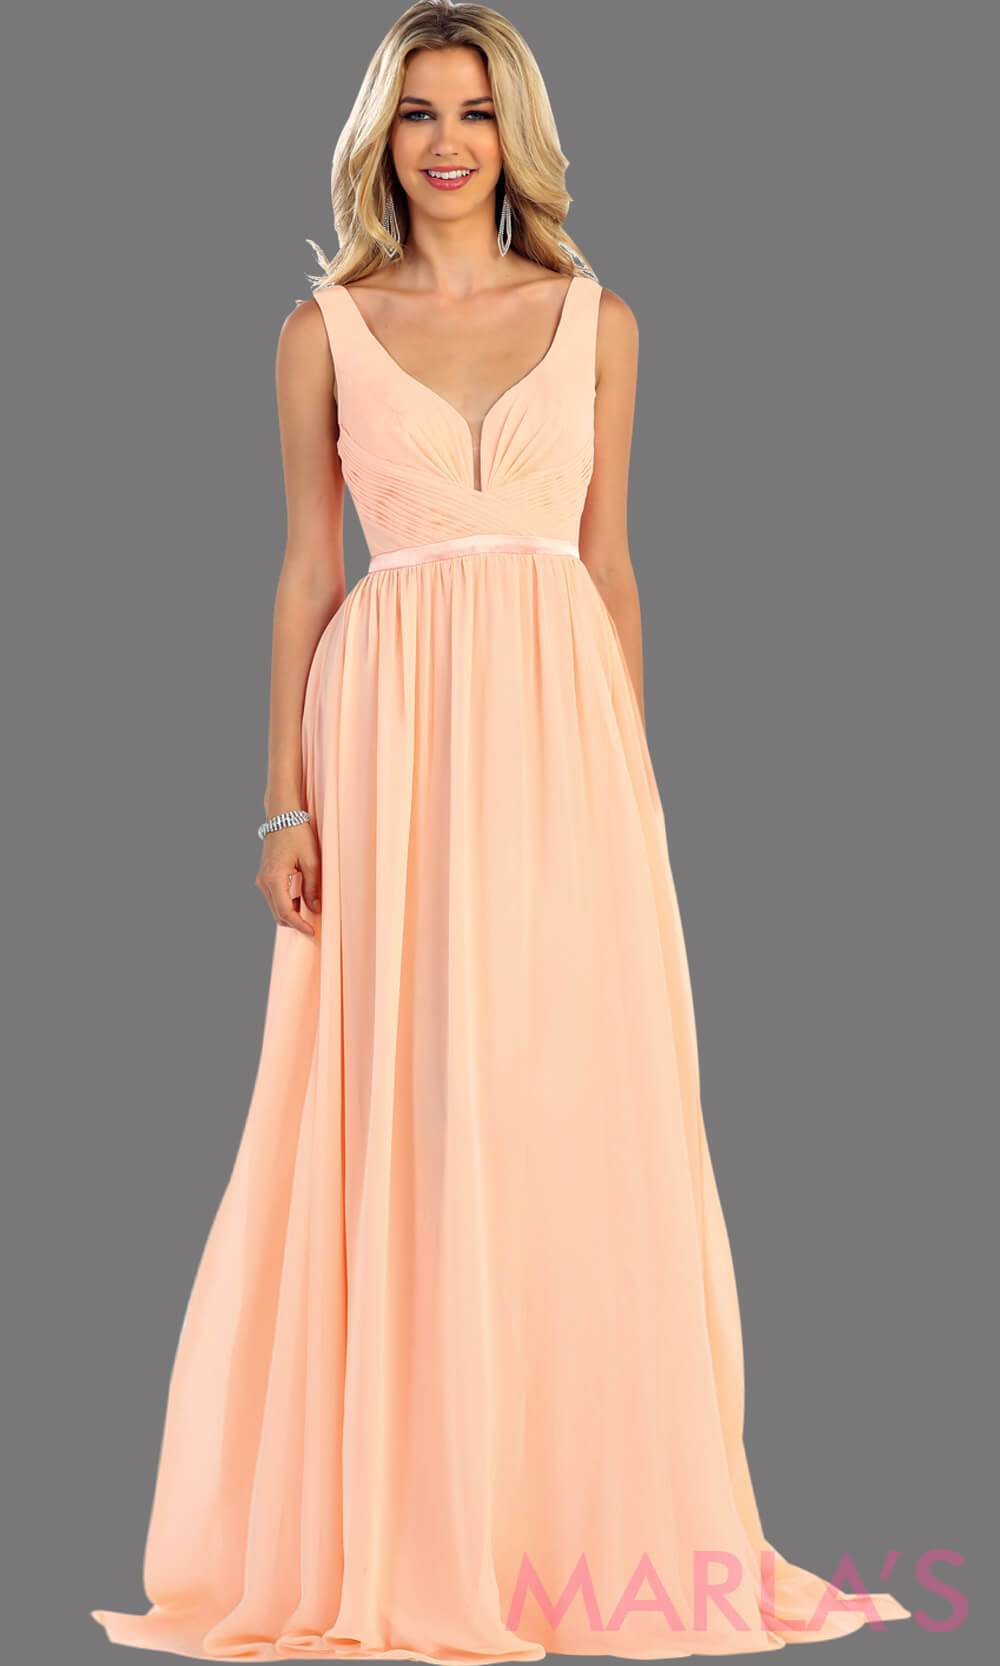 Long blush dress with wide straps and v neck dress. This simple evening gown is perfect for a wedding guest dress, simple light prom dress, or even a bridesmaid dress. This dress is available in plus size.